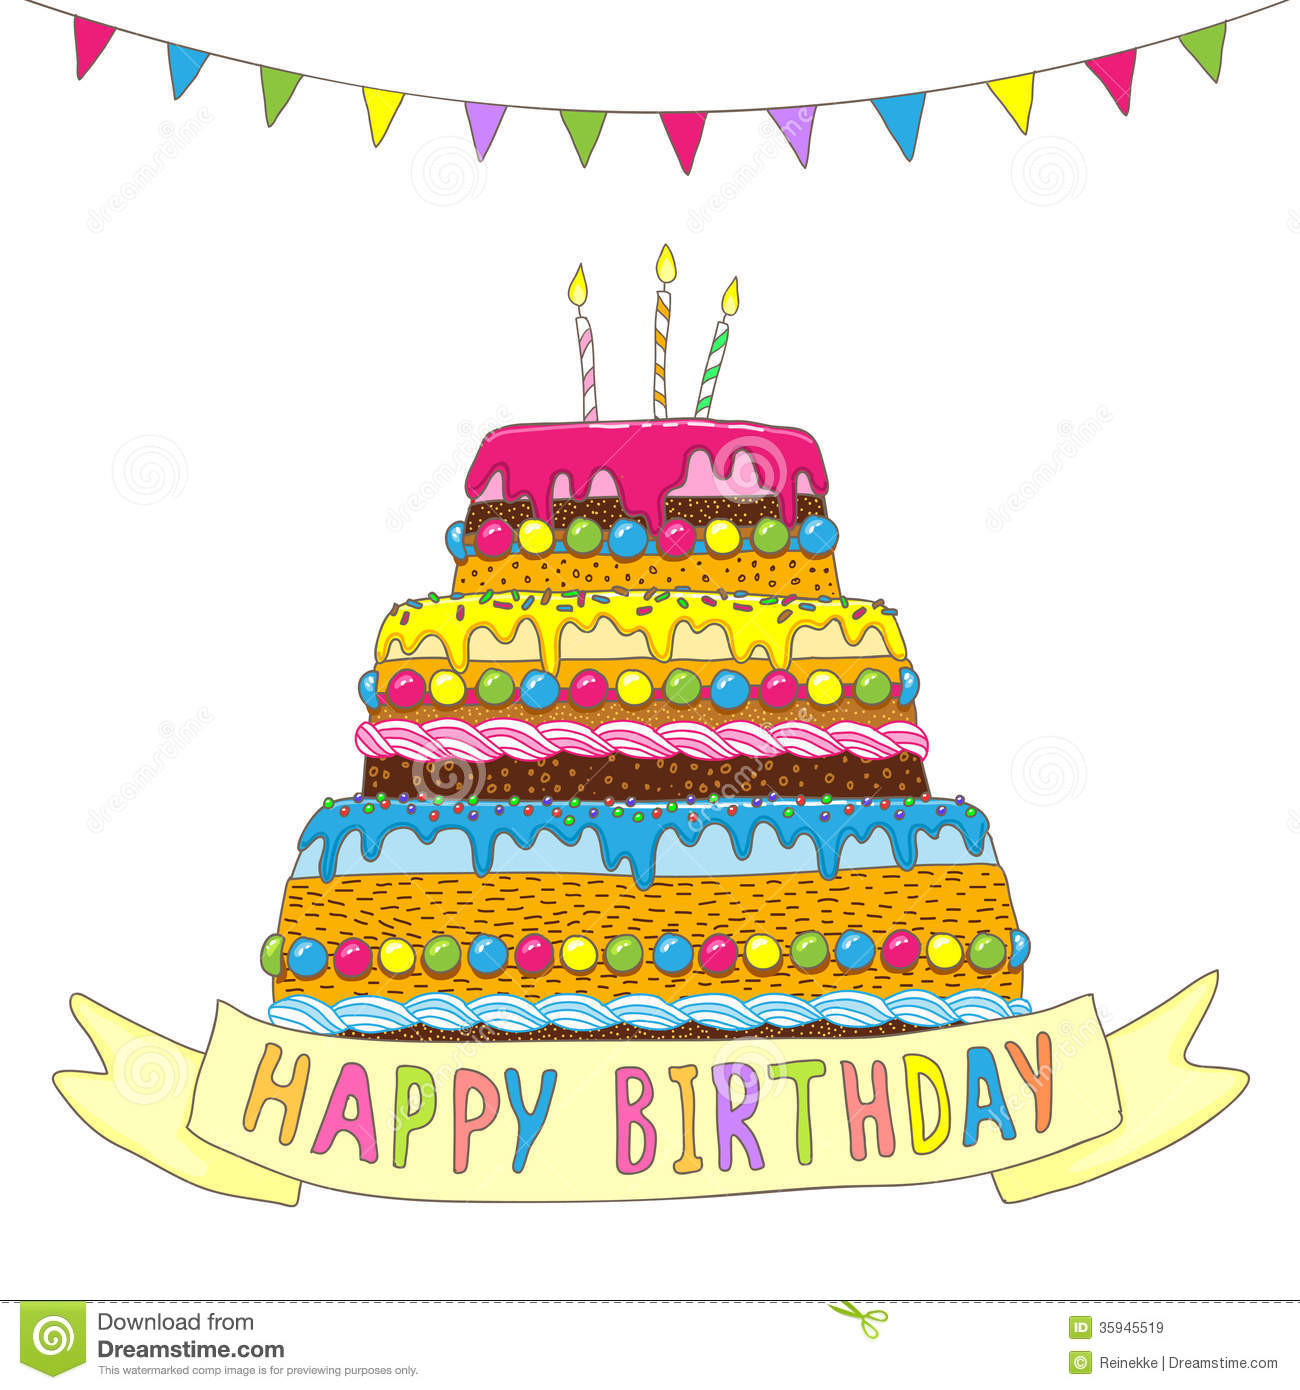 Big Cake Images Download : Birthday Royalty Free Stock Images - Image: 35945519